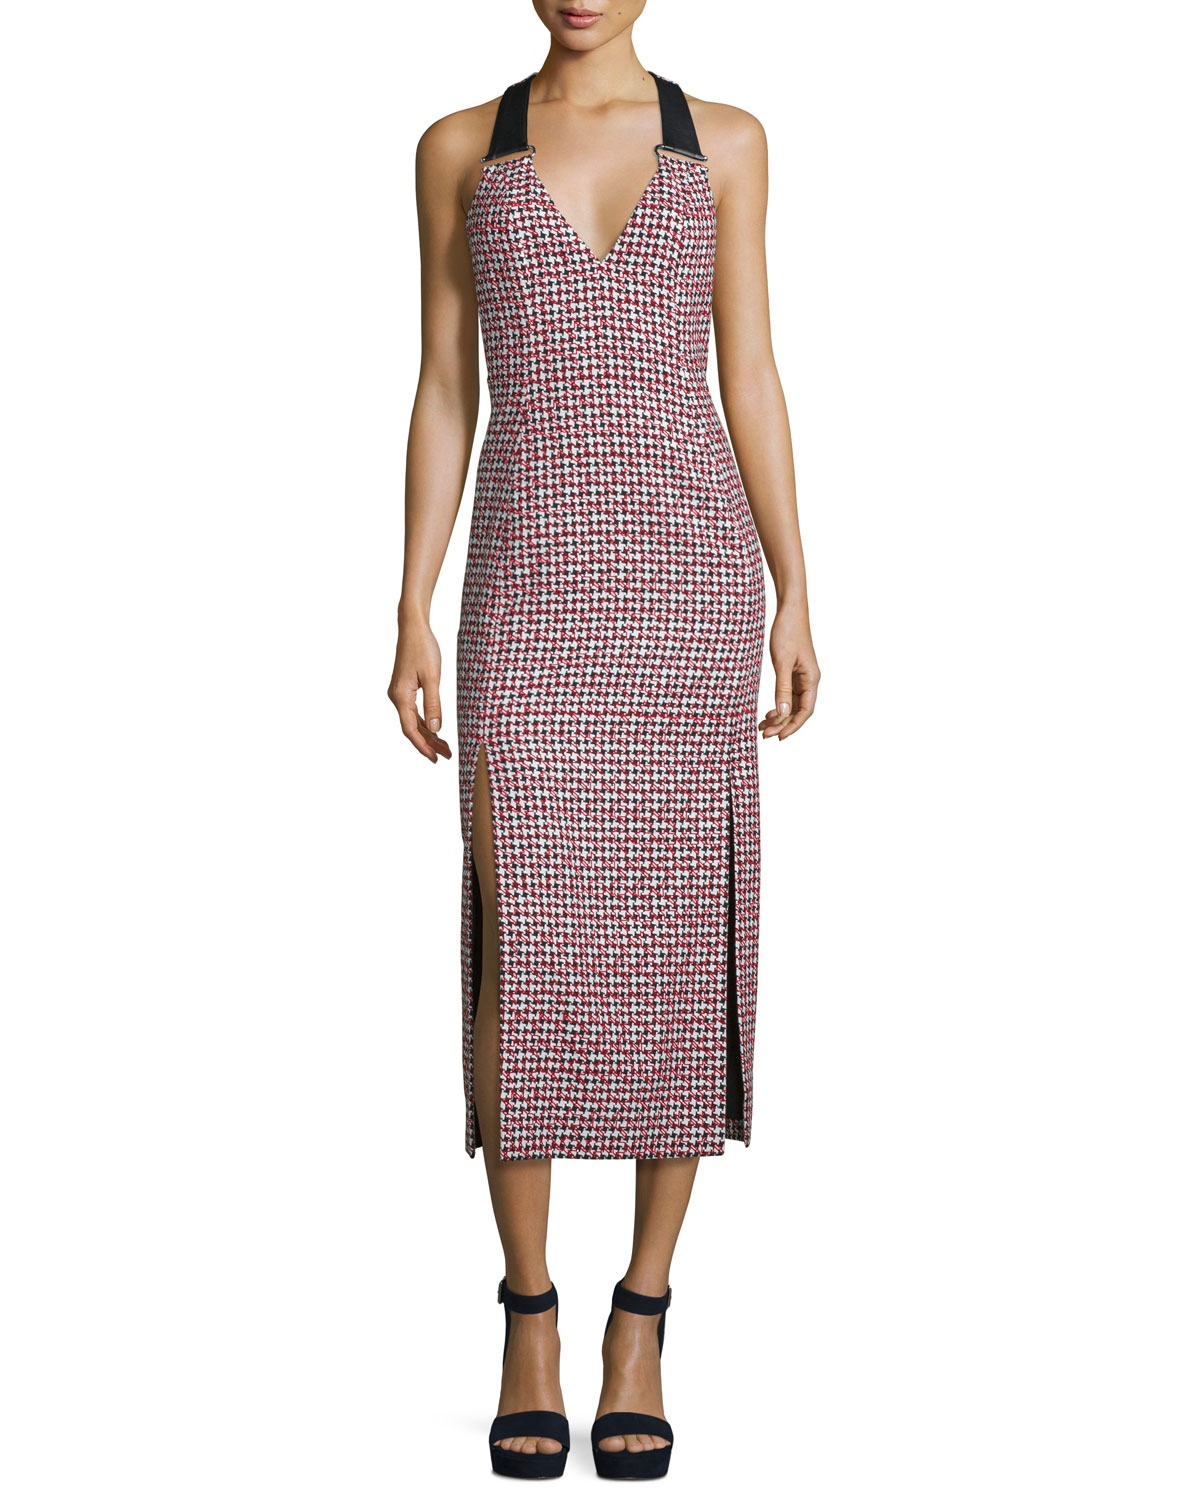 59a5593c7a41 Thierry Mugler Houndstooth Sleeveless Midi Dress